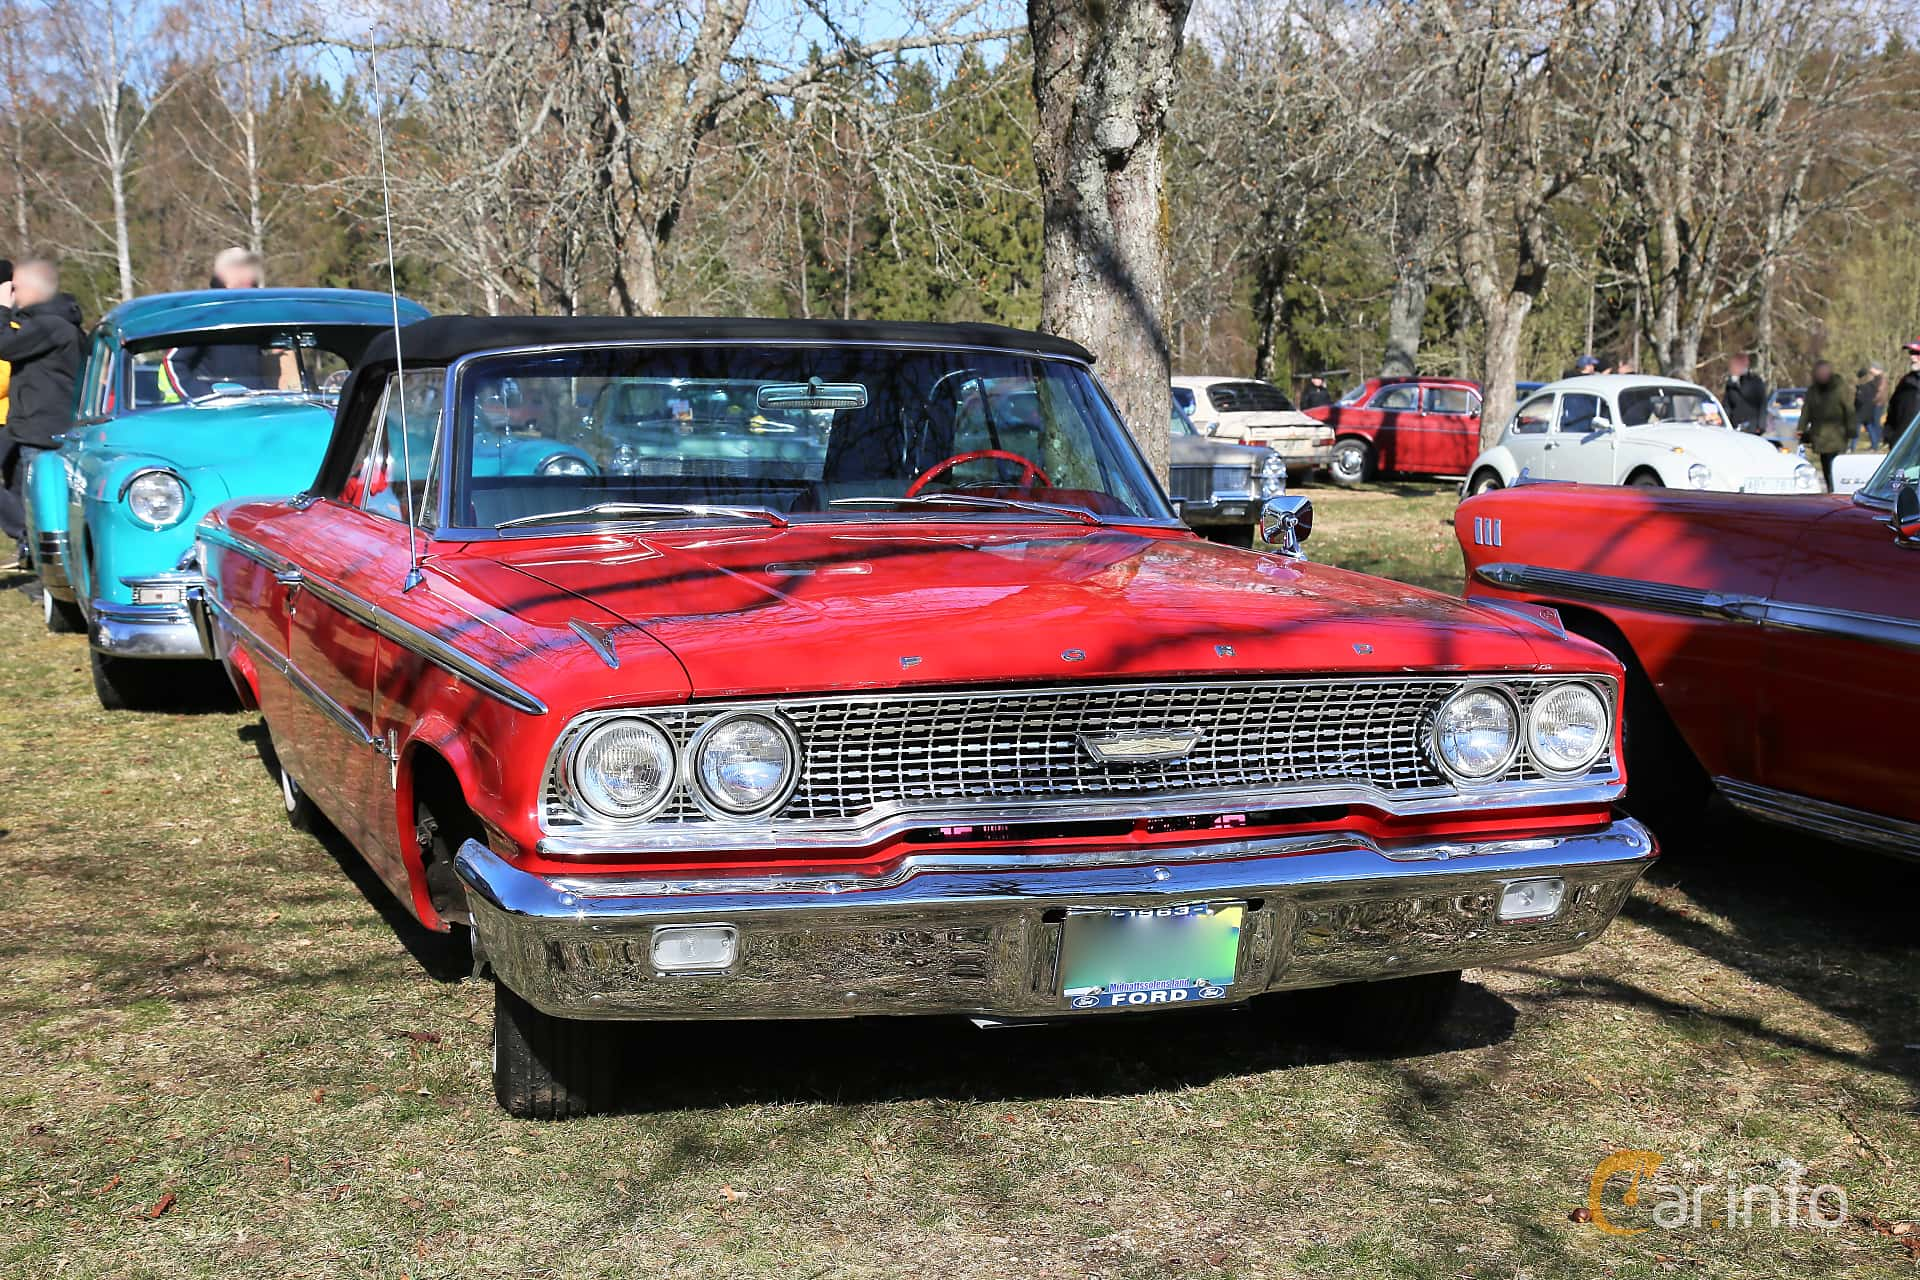 Ford Galaxie 500/XL Convertible 5.8 V8 Automatic, 223hp, 1963 at Uddevalla Veteranbilsmarknad Backamo, Ljungsk 2019